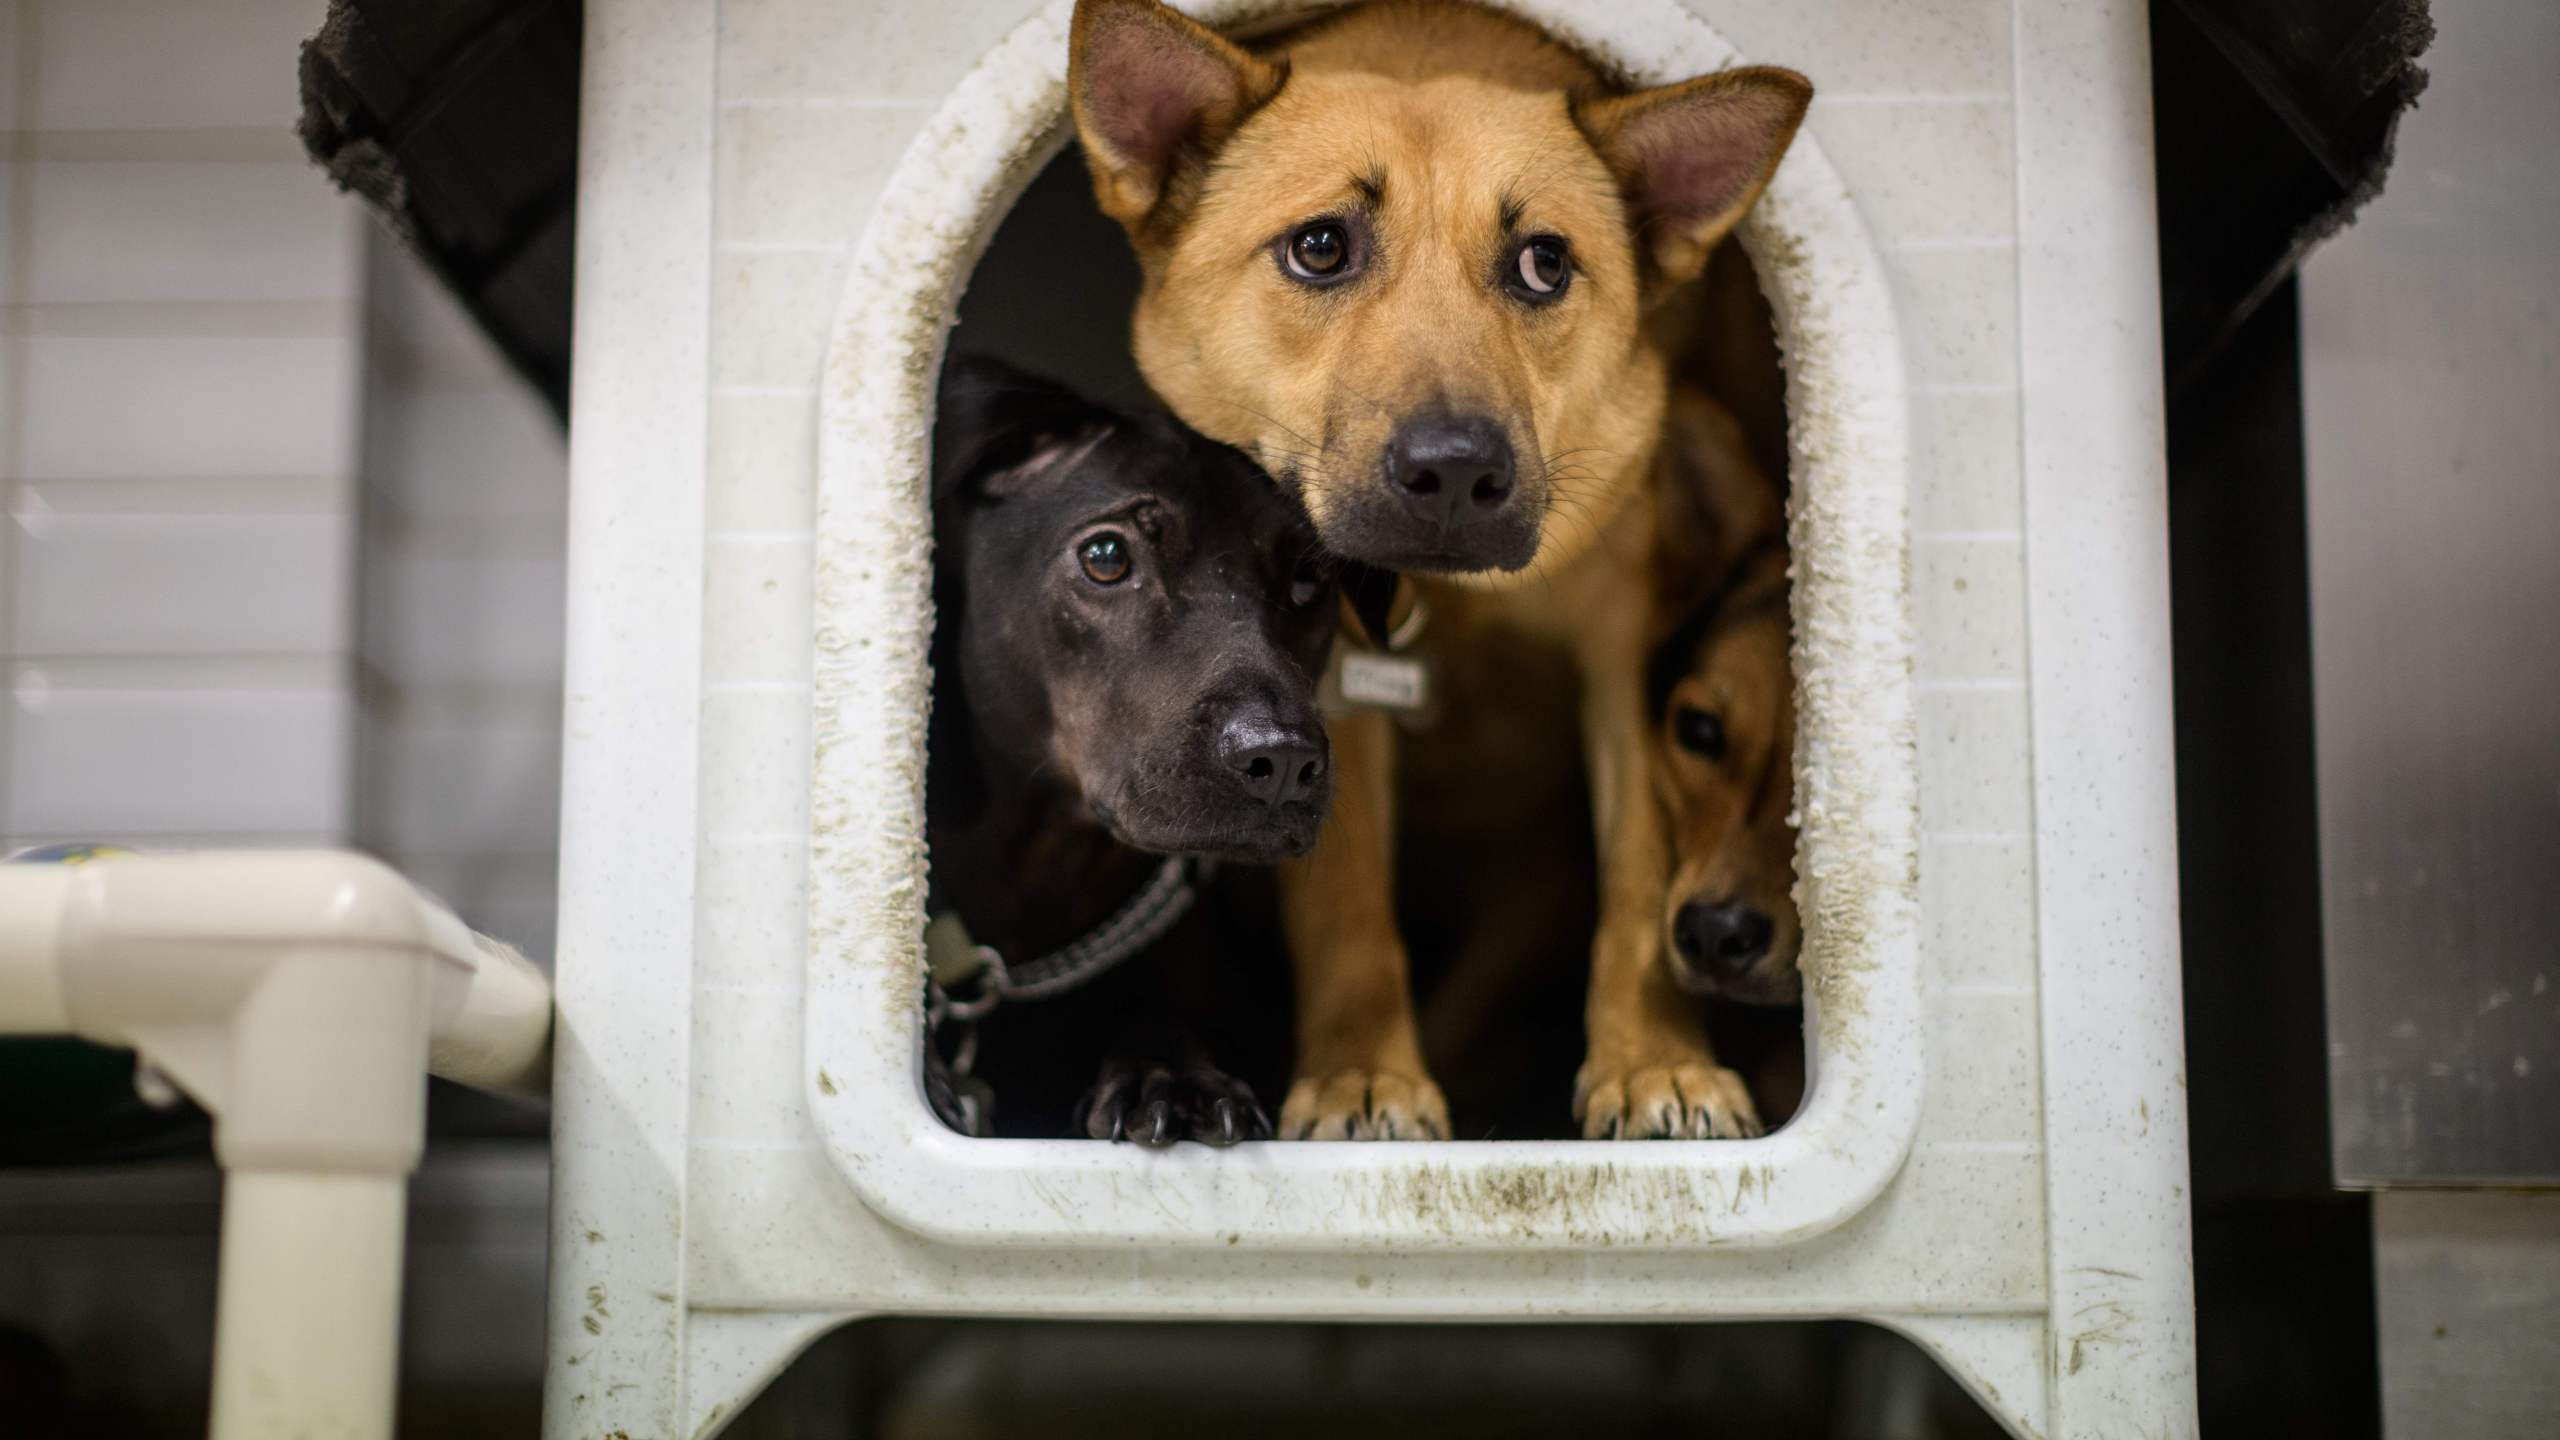 Dogs in a dog house (Photo by ANTHONY WALLACE/AFP via Getty Images)